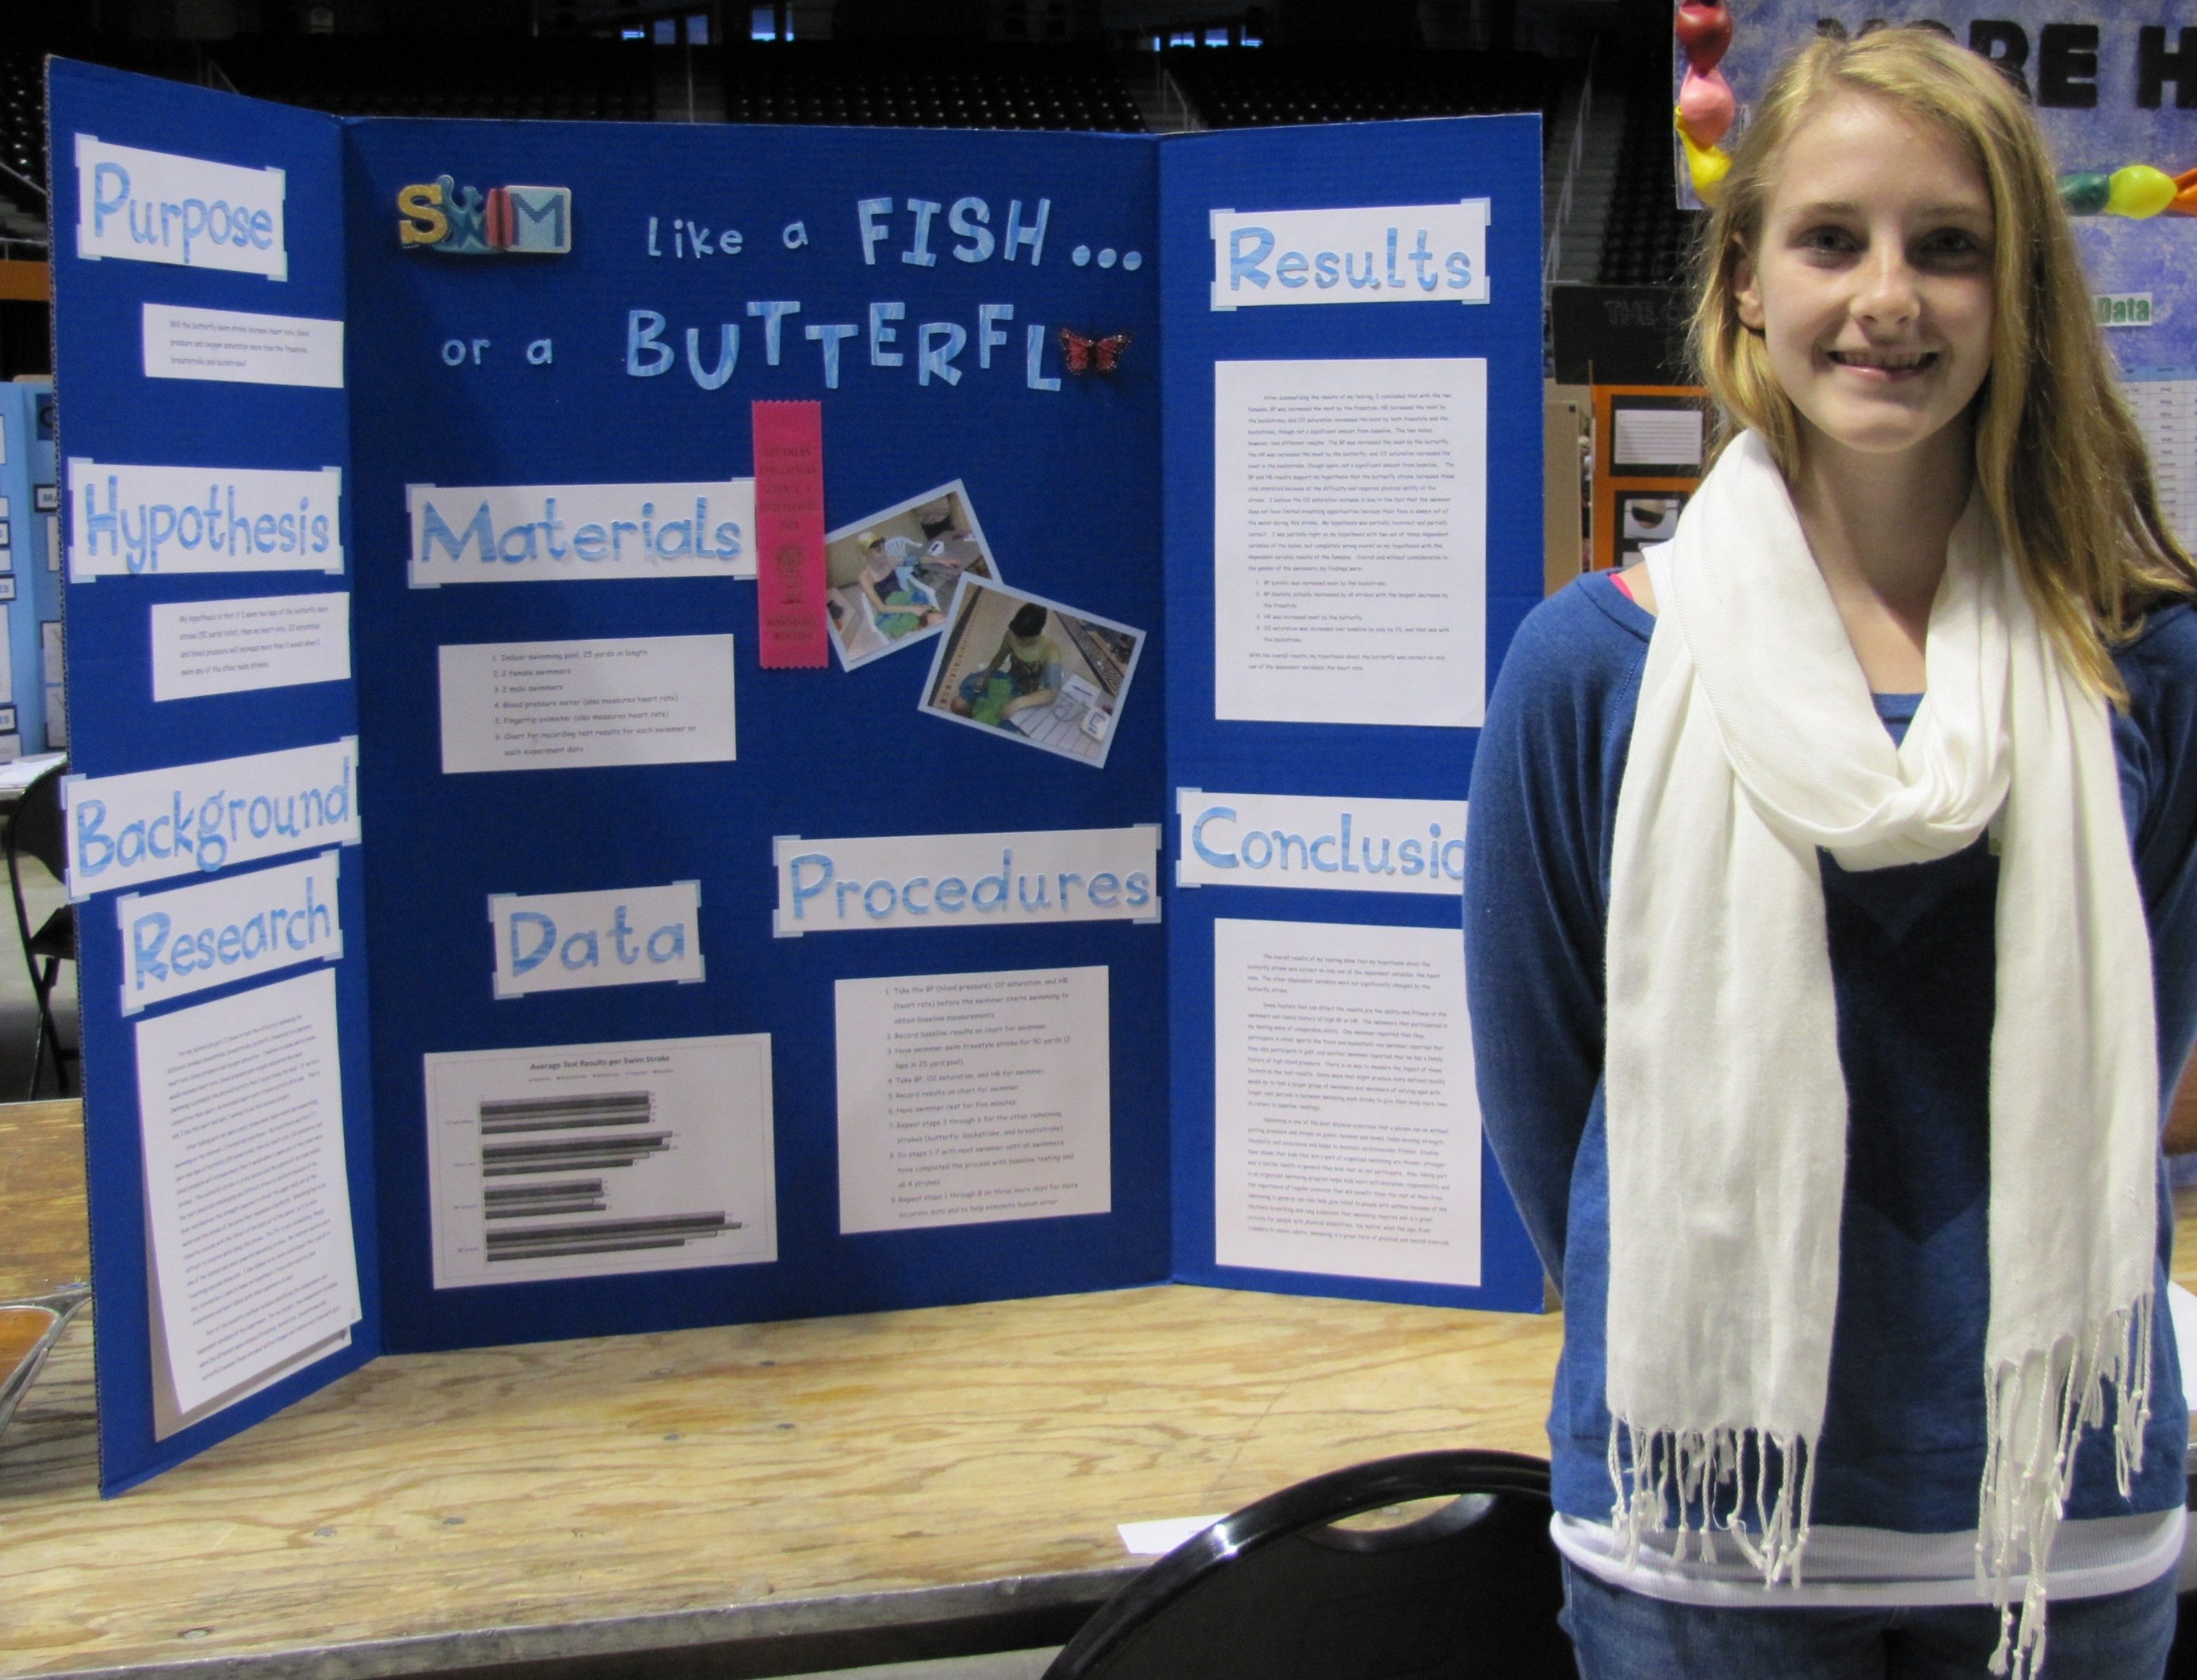 10 Great Middle School Science Project Ideas young scientists merit nimbios science fair prizes for swimmer 2 2021